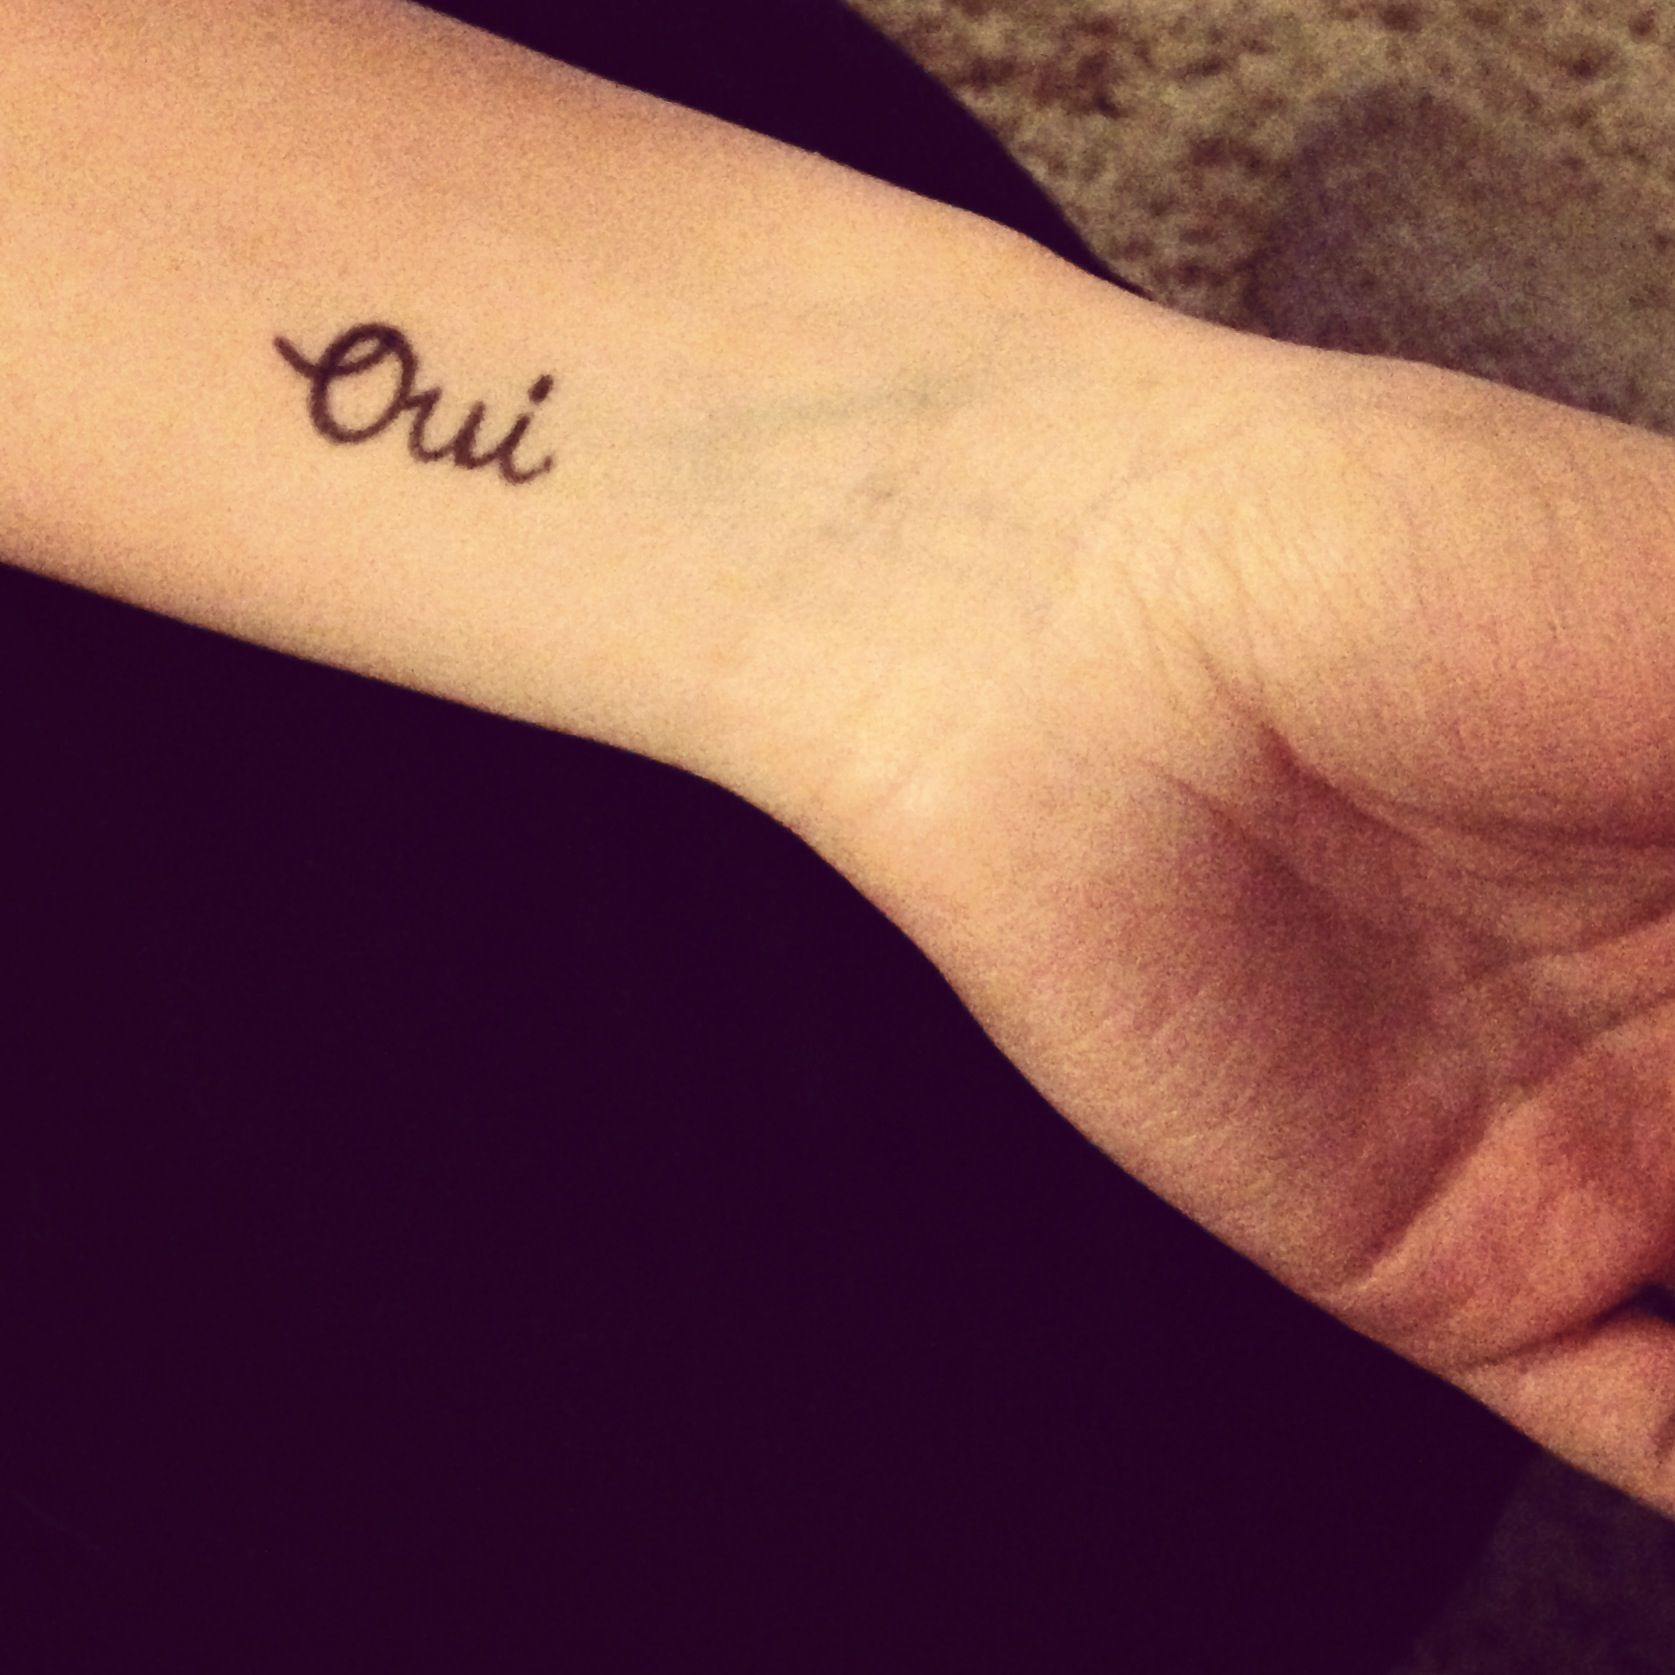 Tattoo Needle Quotes: Tattoos, Tattoo Quotes, New